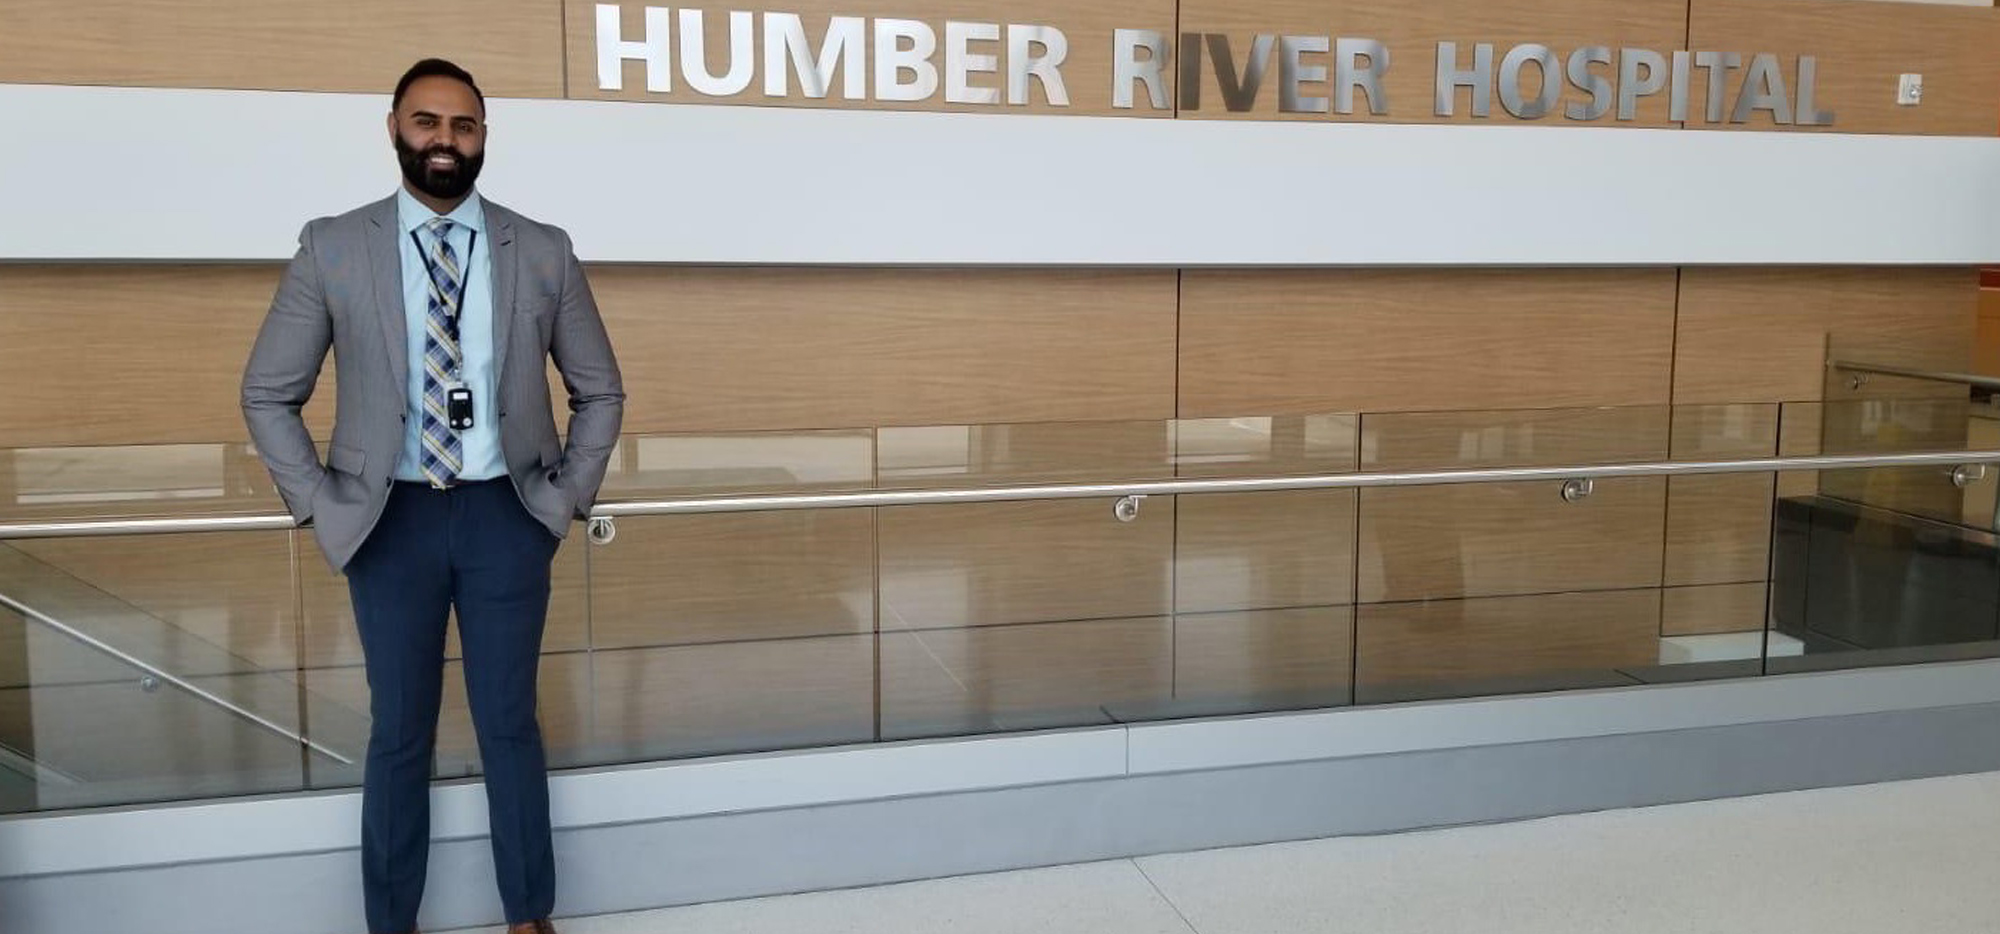 Gaganpal Mutti standing in front of a sign that says Humber River Hospital